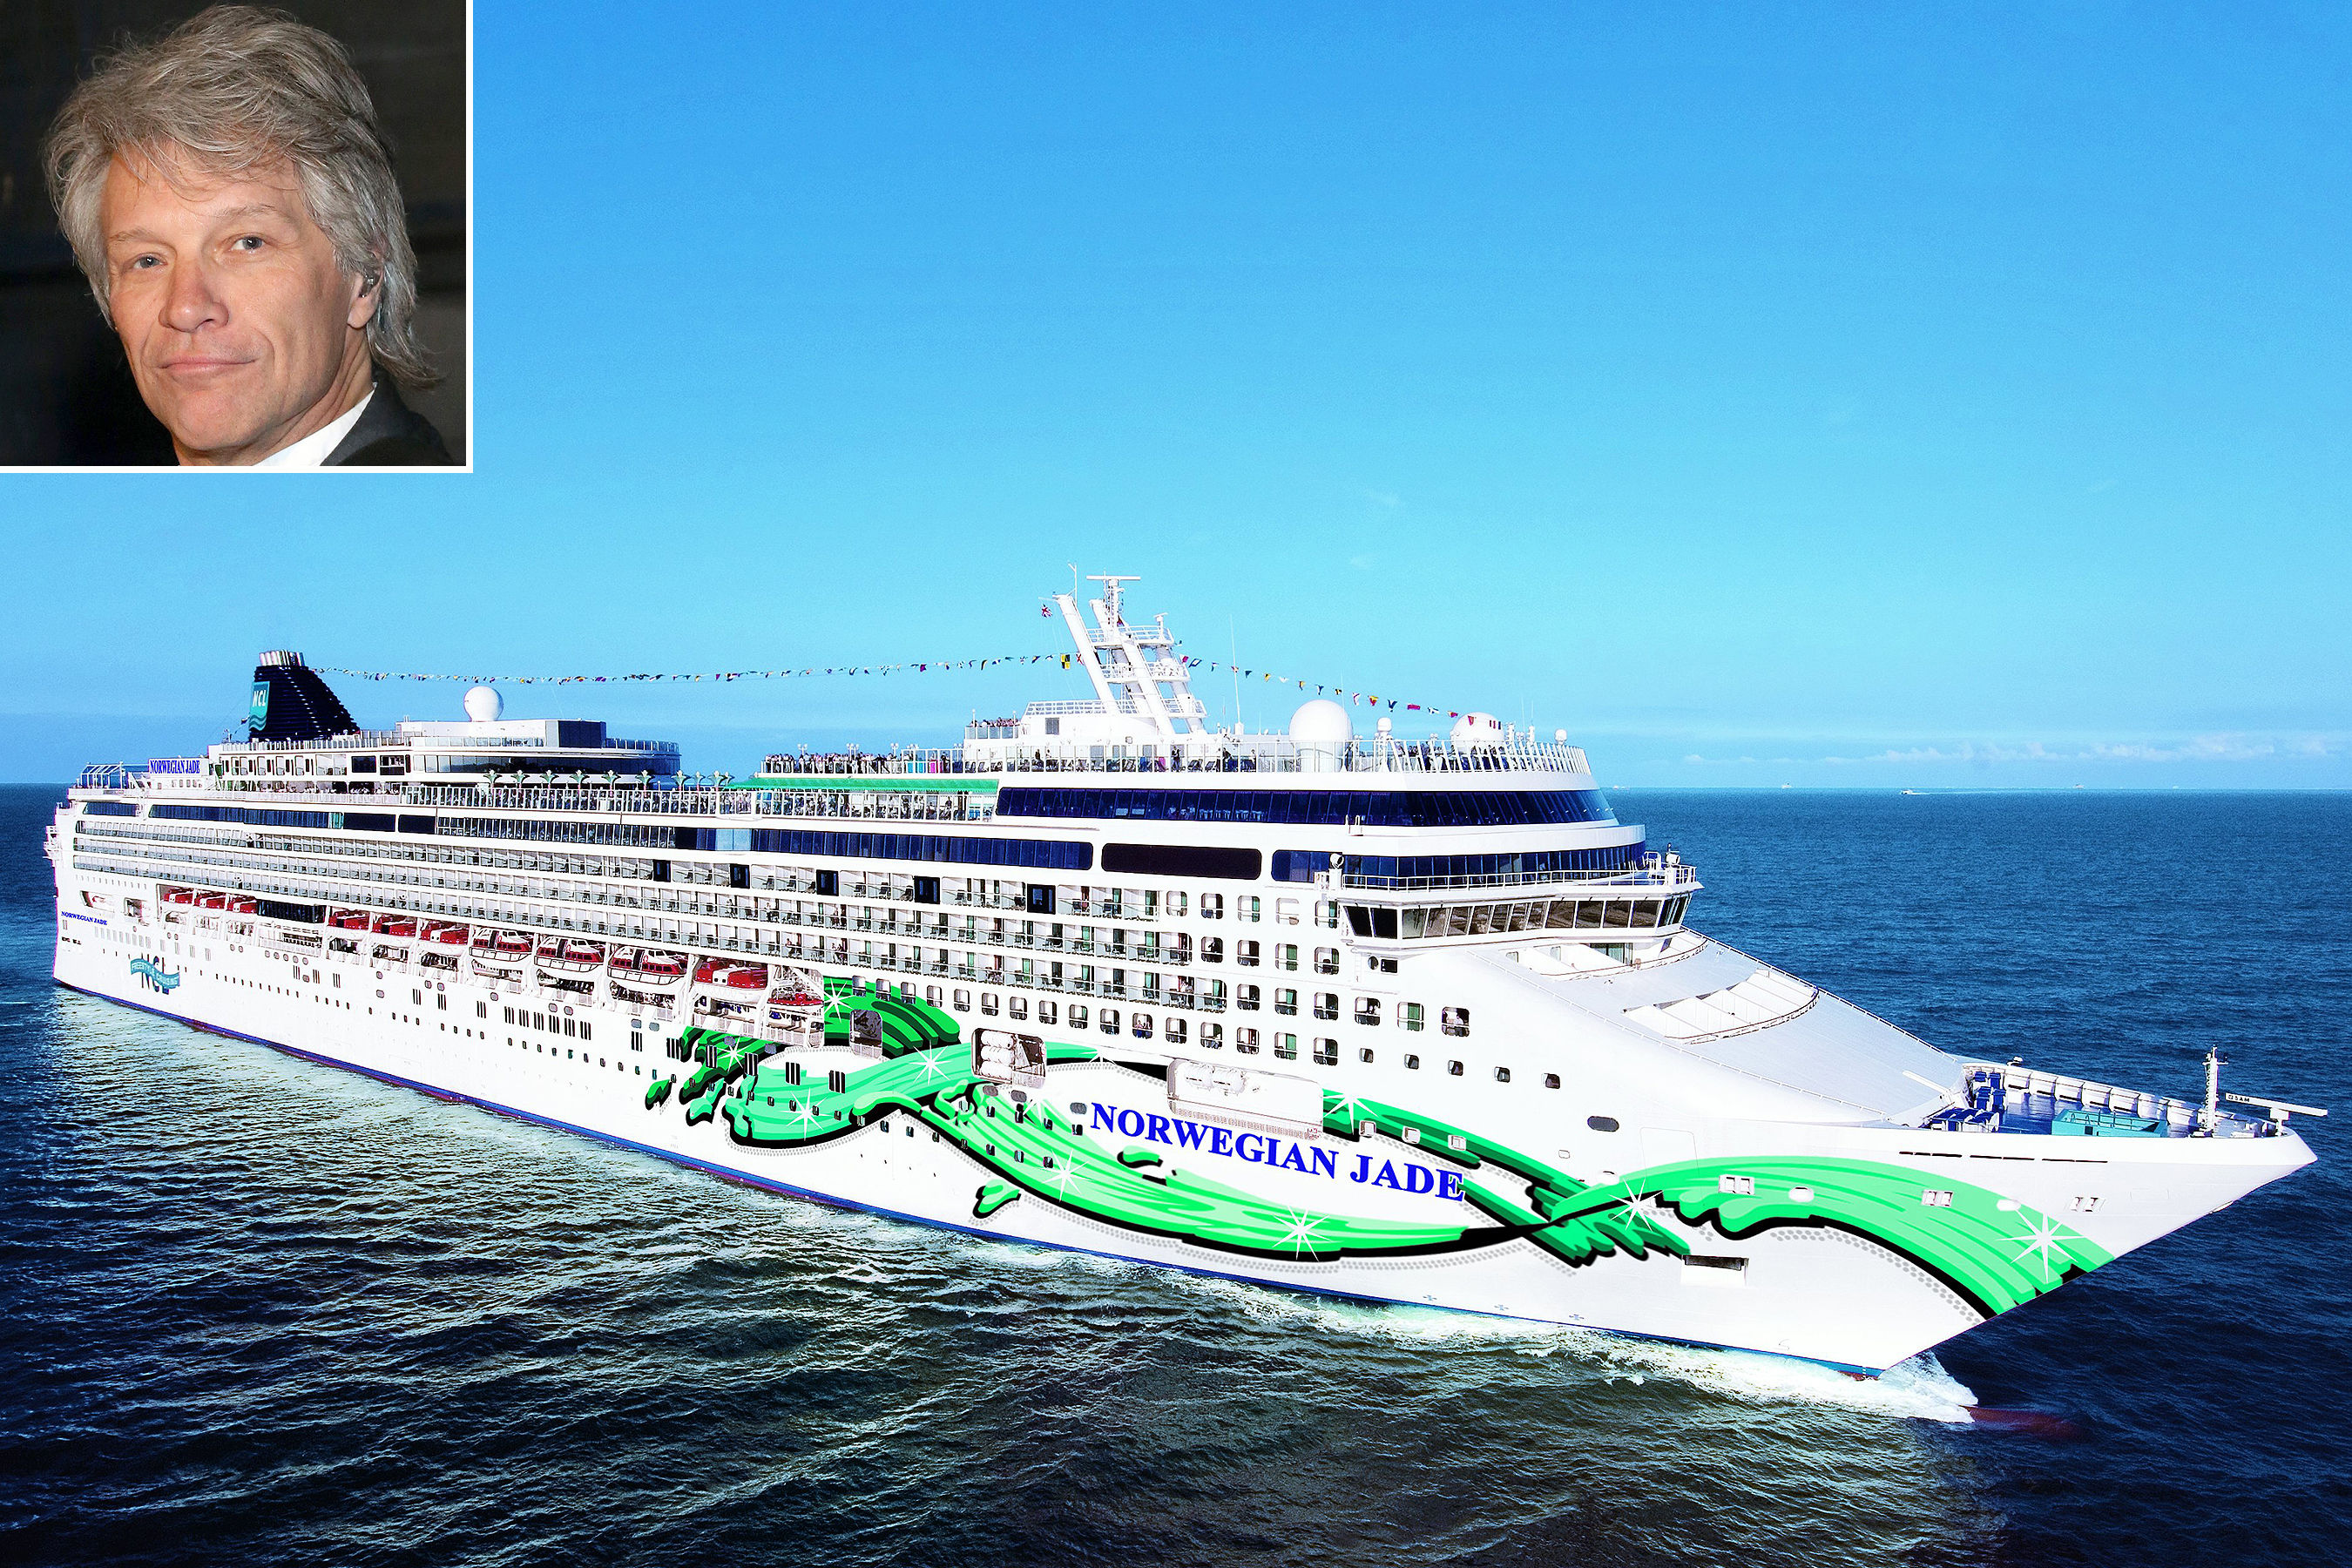 Sail the Seas With Bon Jovi! Everything You Need to Know About the Brand-New Cruise